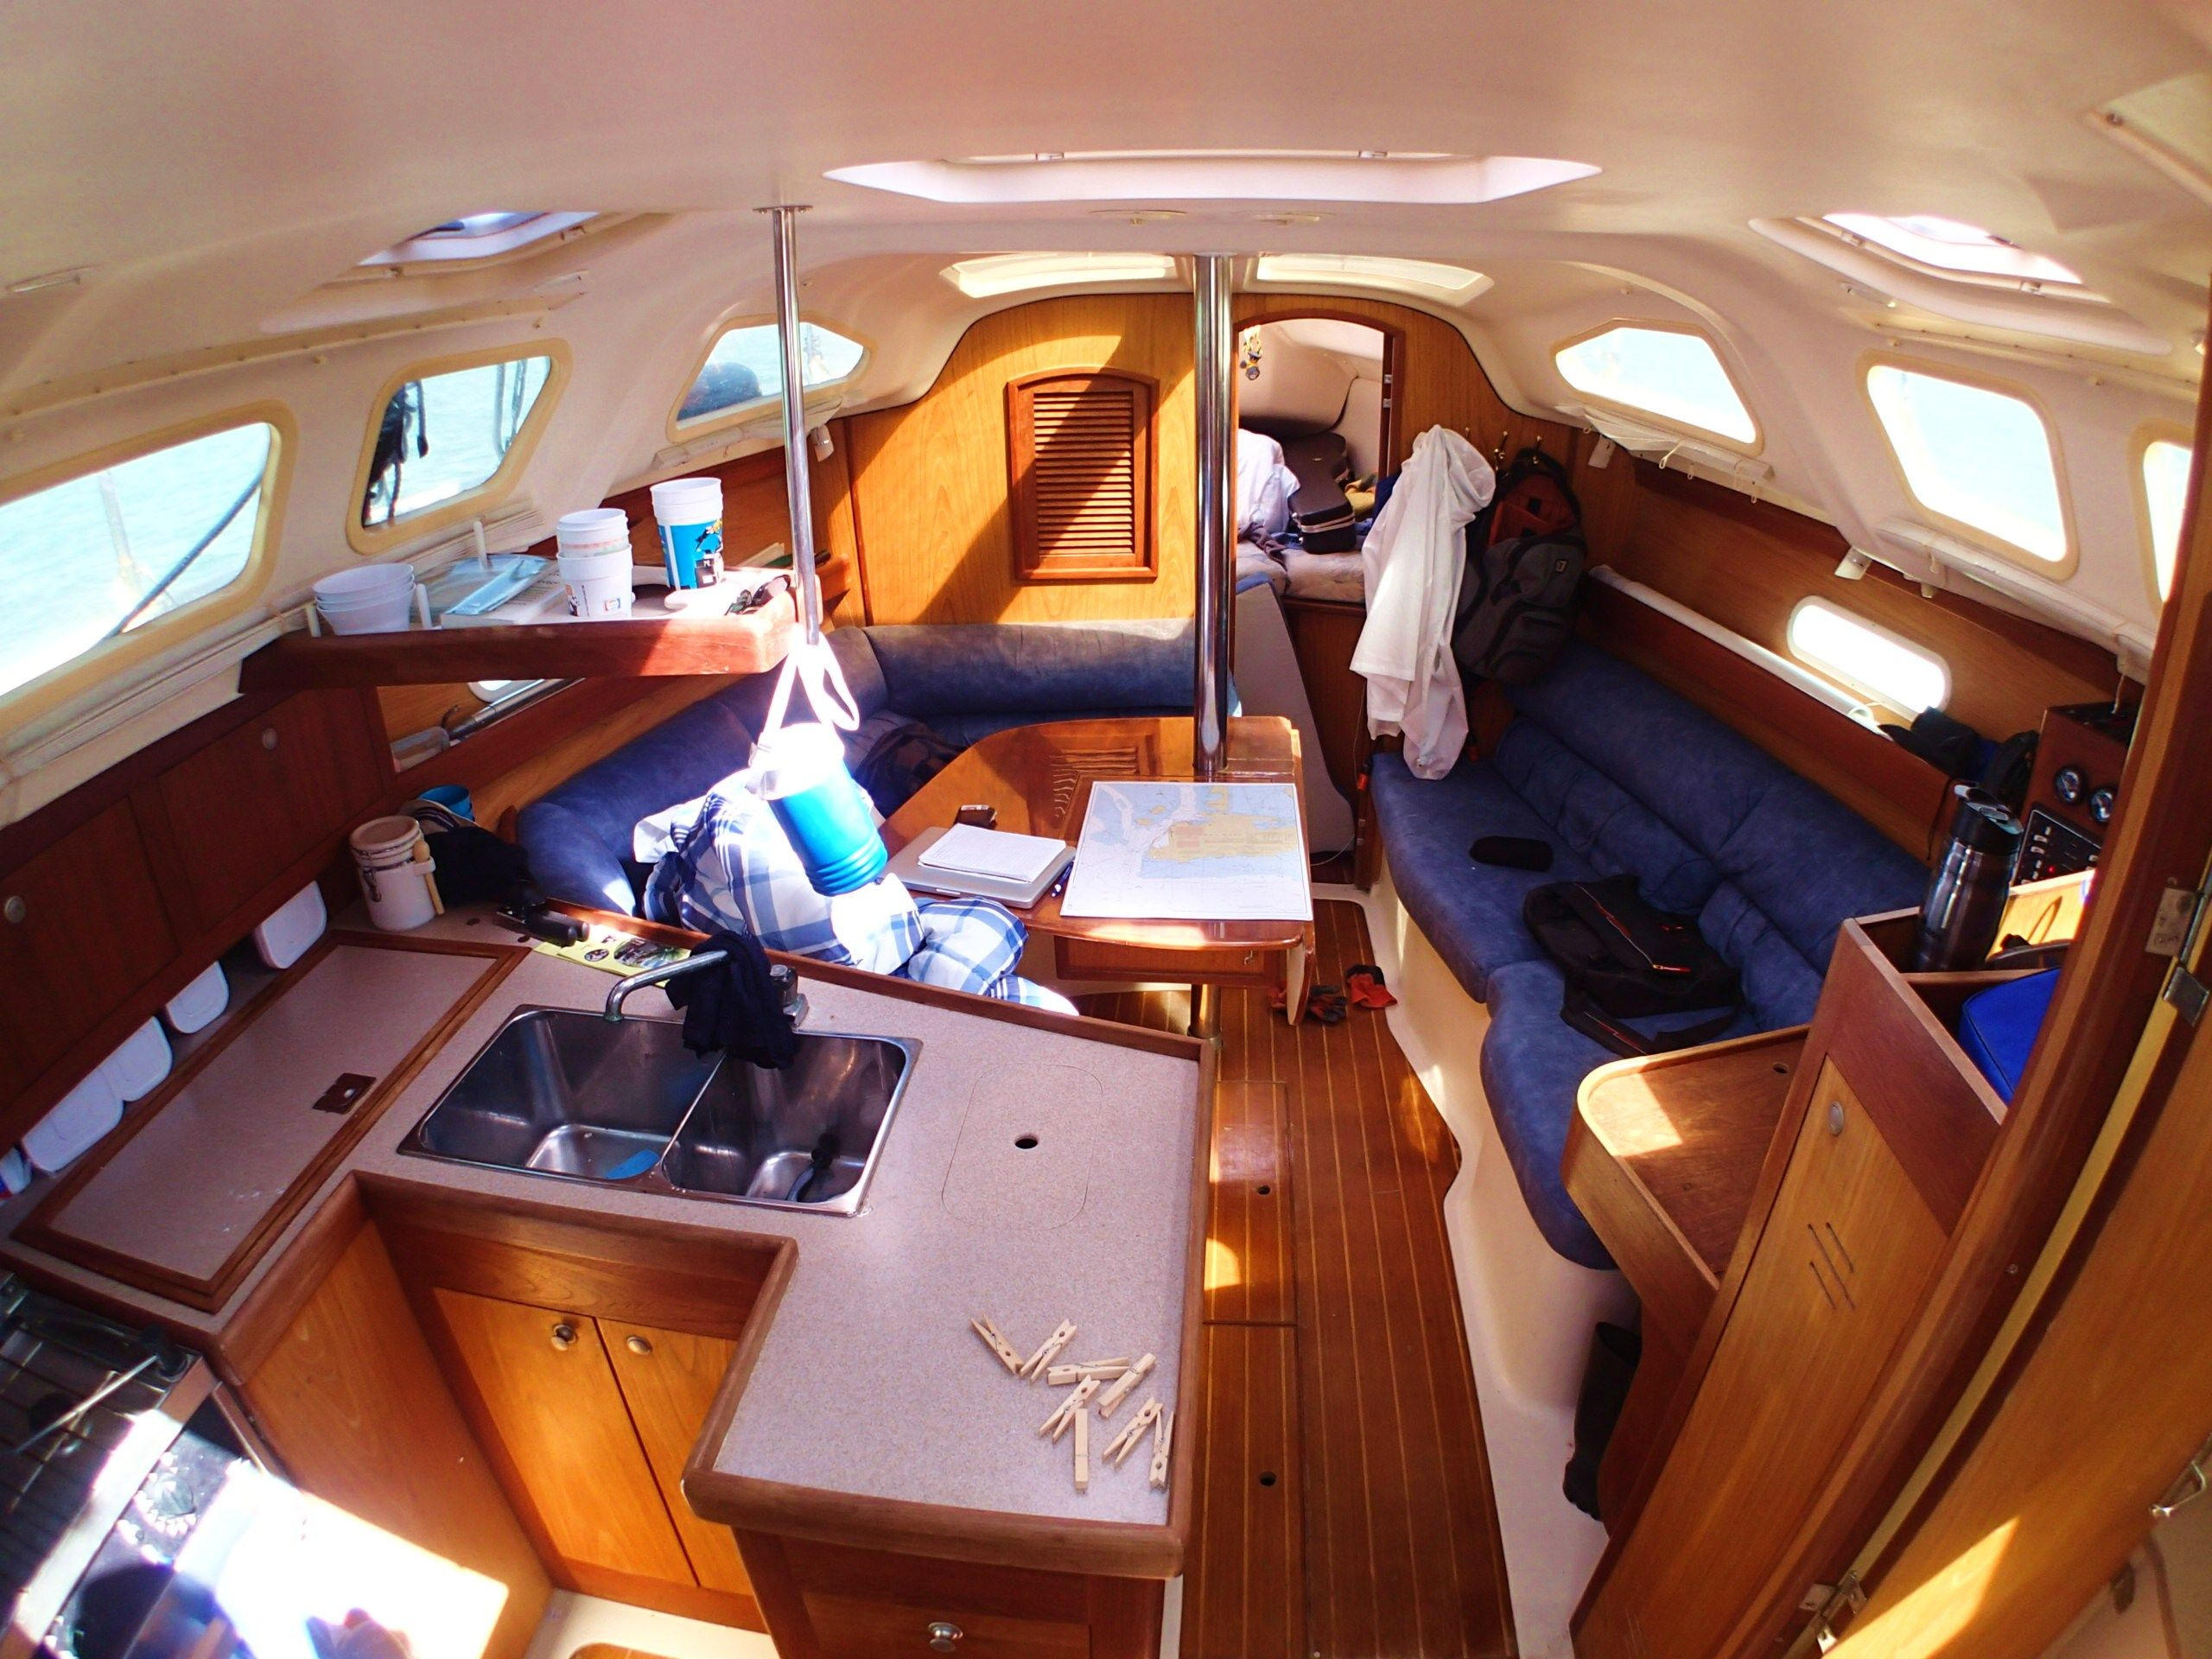 Living Aboard A Sailboat Living On A Sailboat Expenses